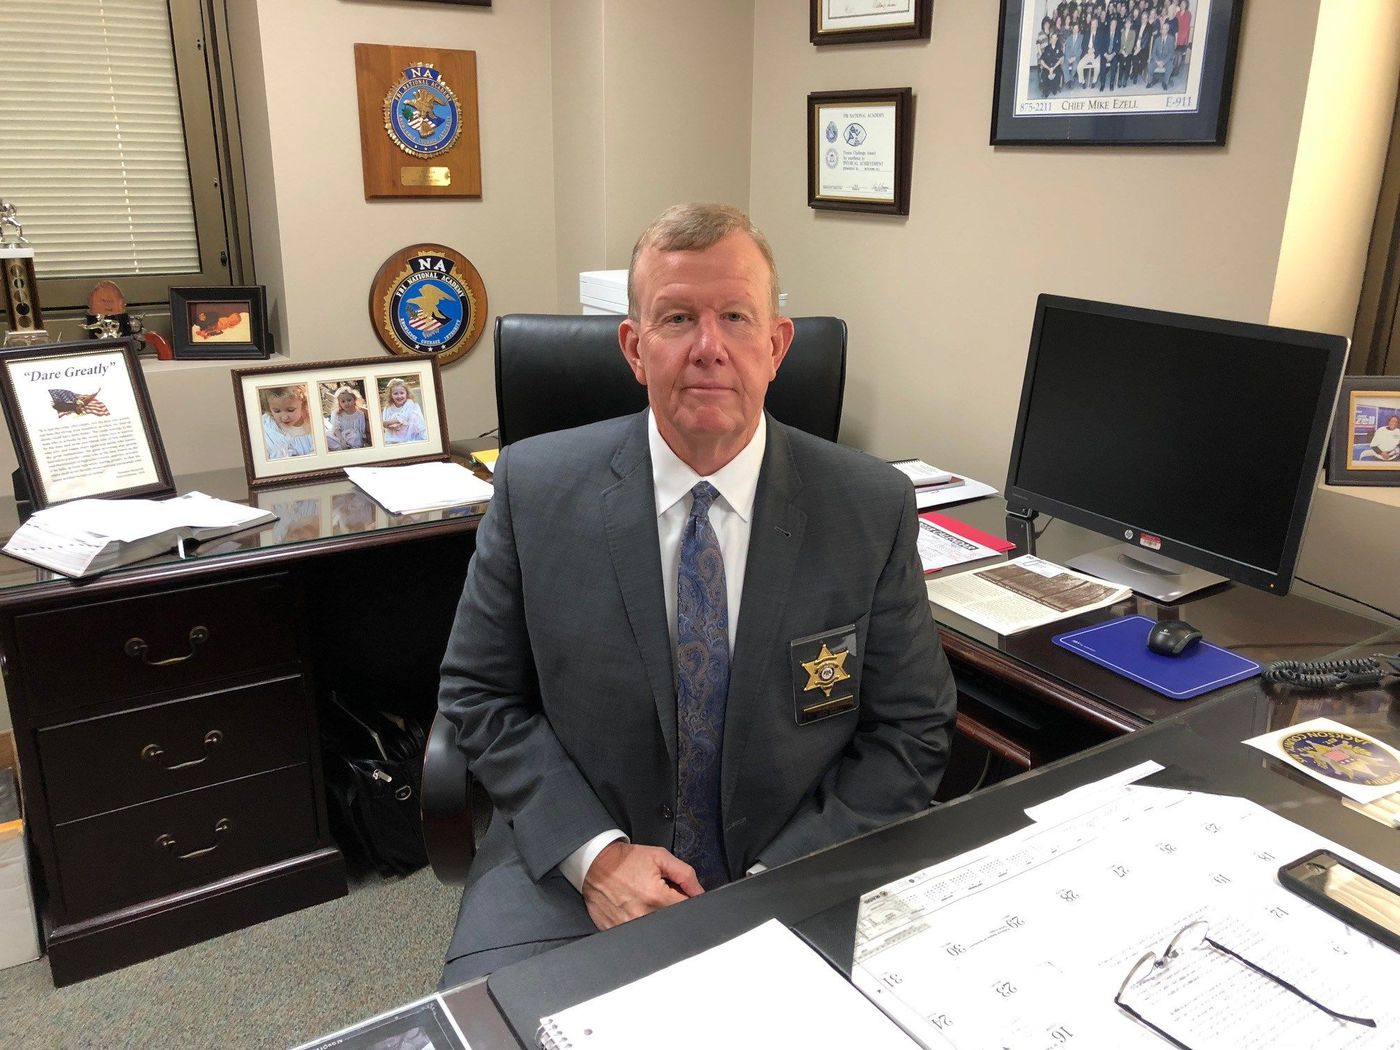 Will early education reduce crime? Sheriff says yes